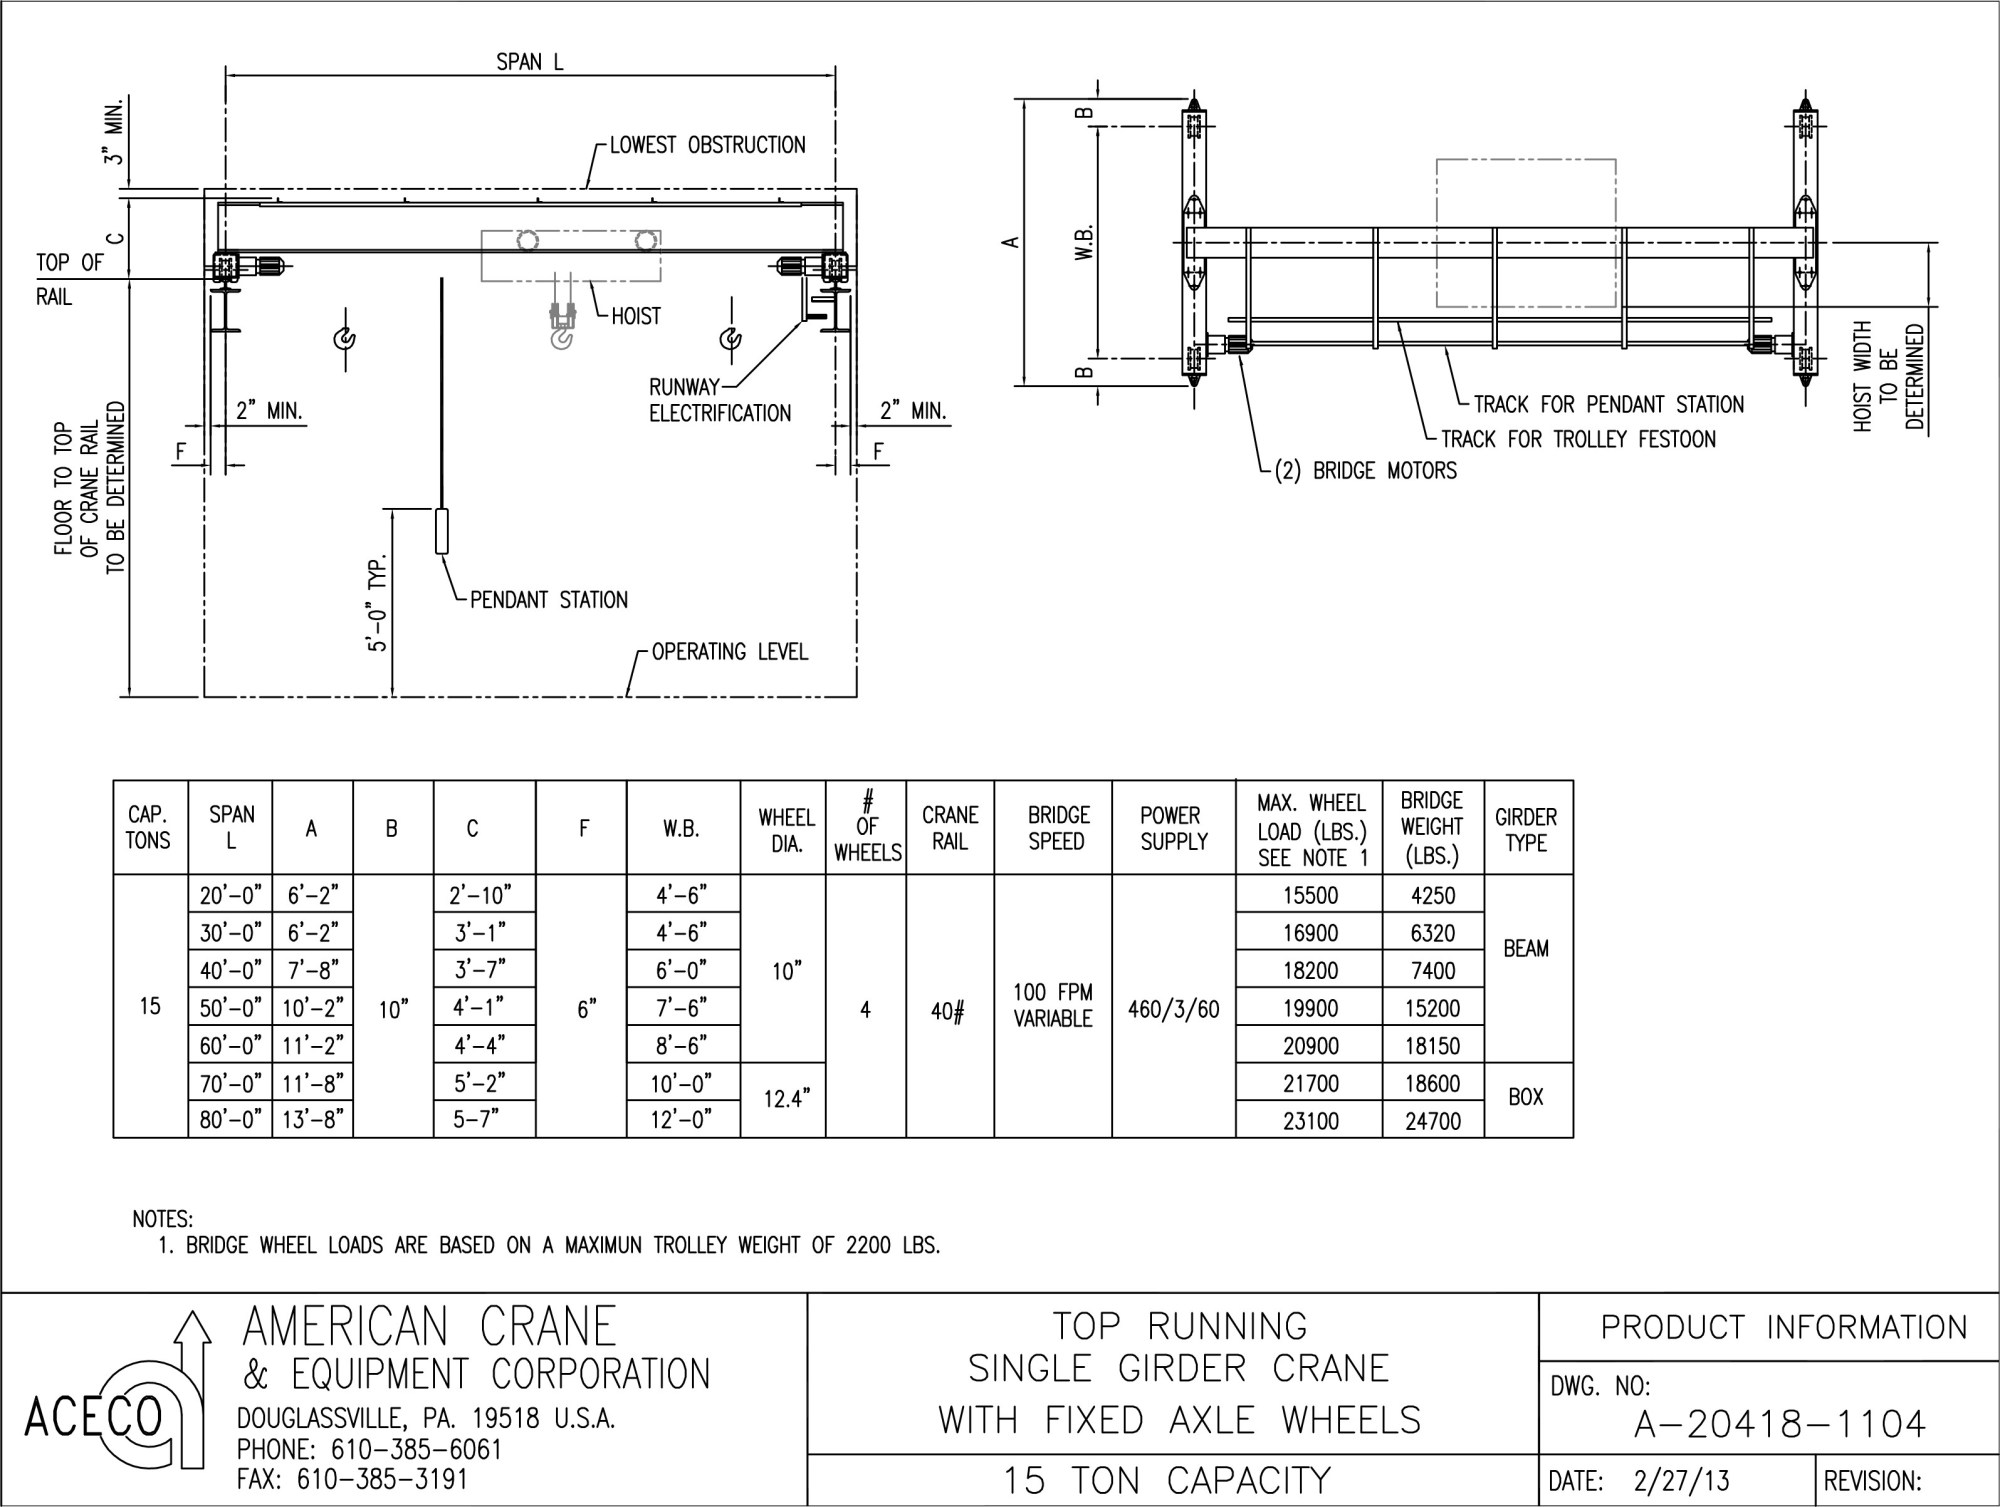 hight resolution of american crane 15 ton top running single girder crane with fixed axle wheels